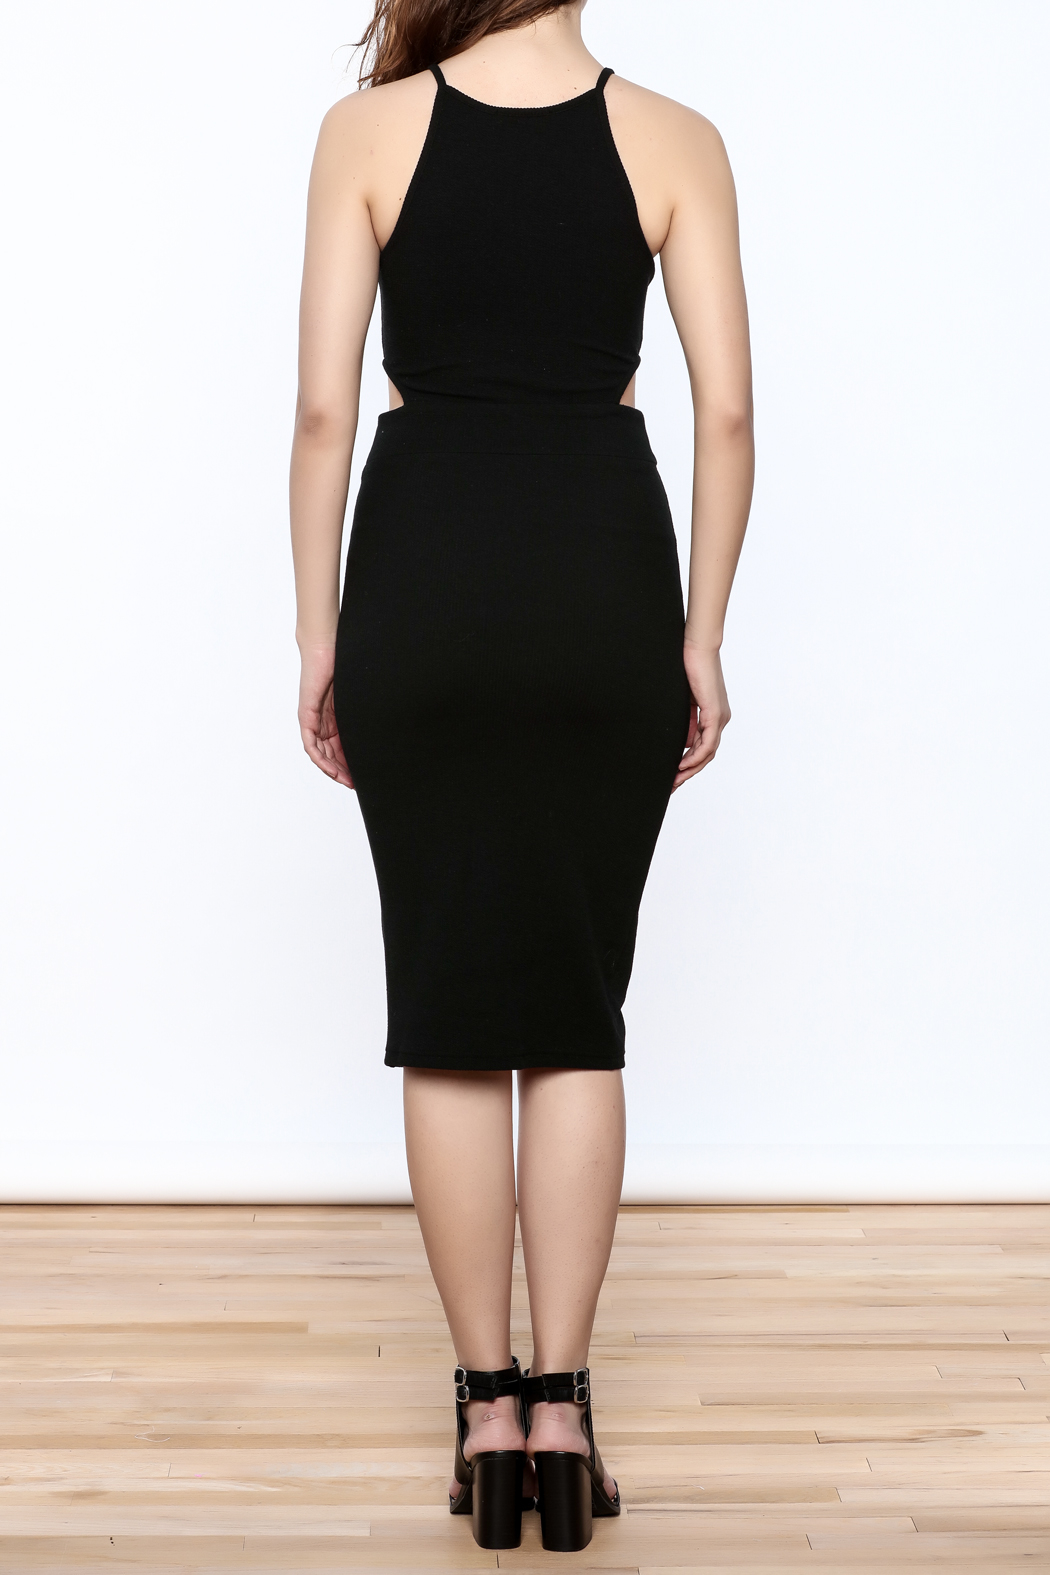 Bishop + Young Black Cut-Out Dress - Back Cropped Image